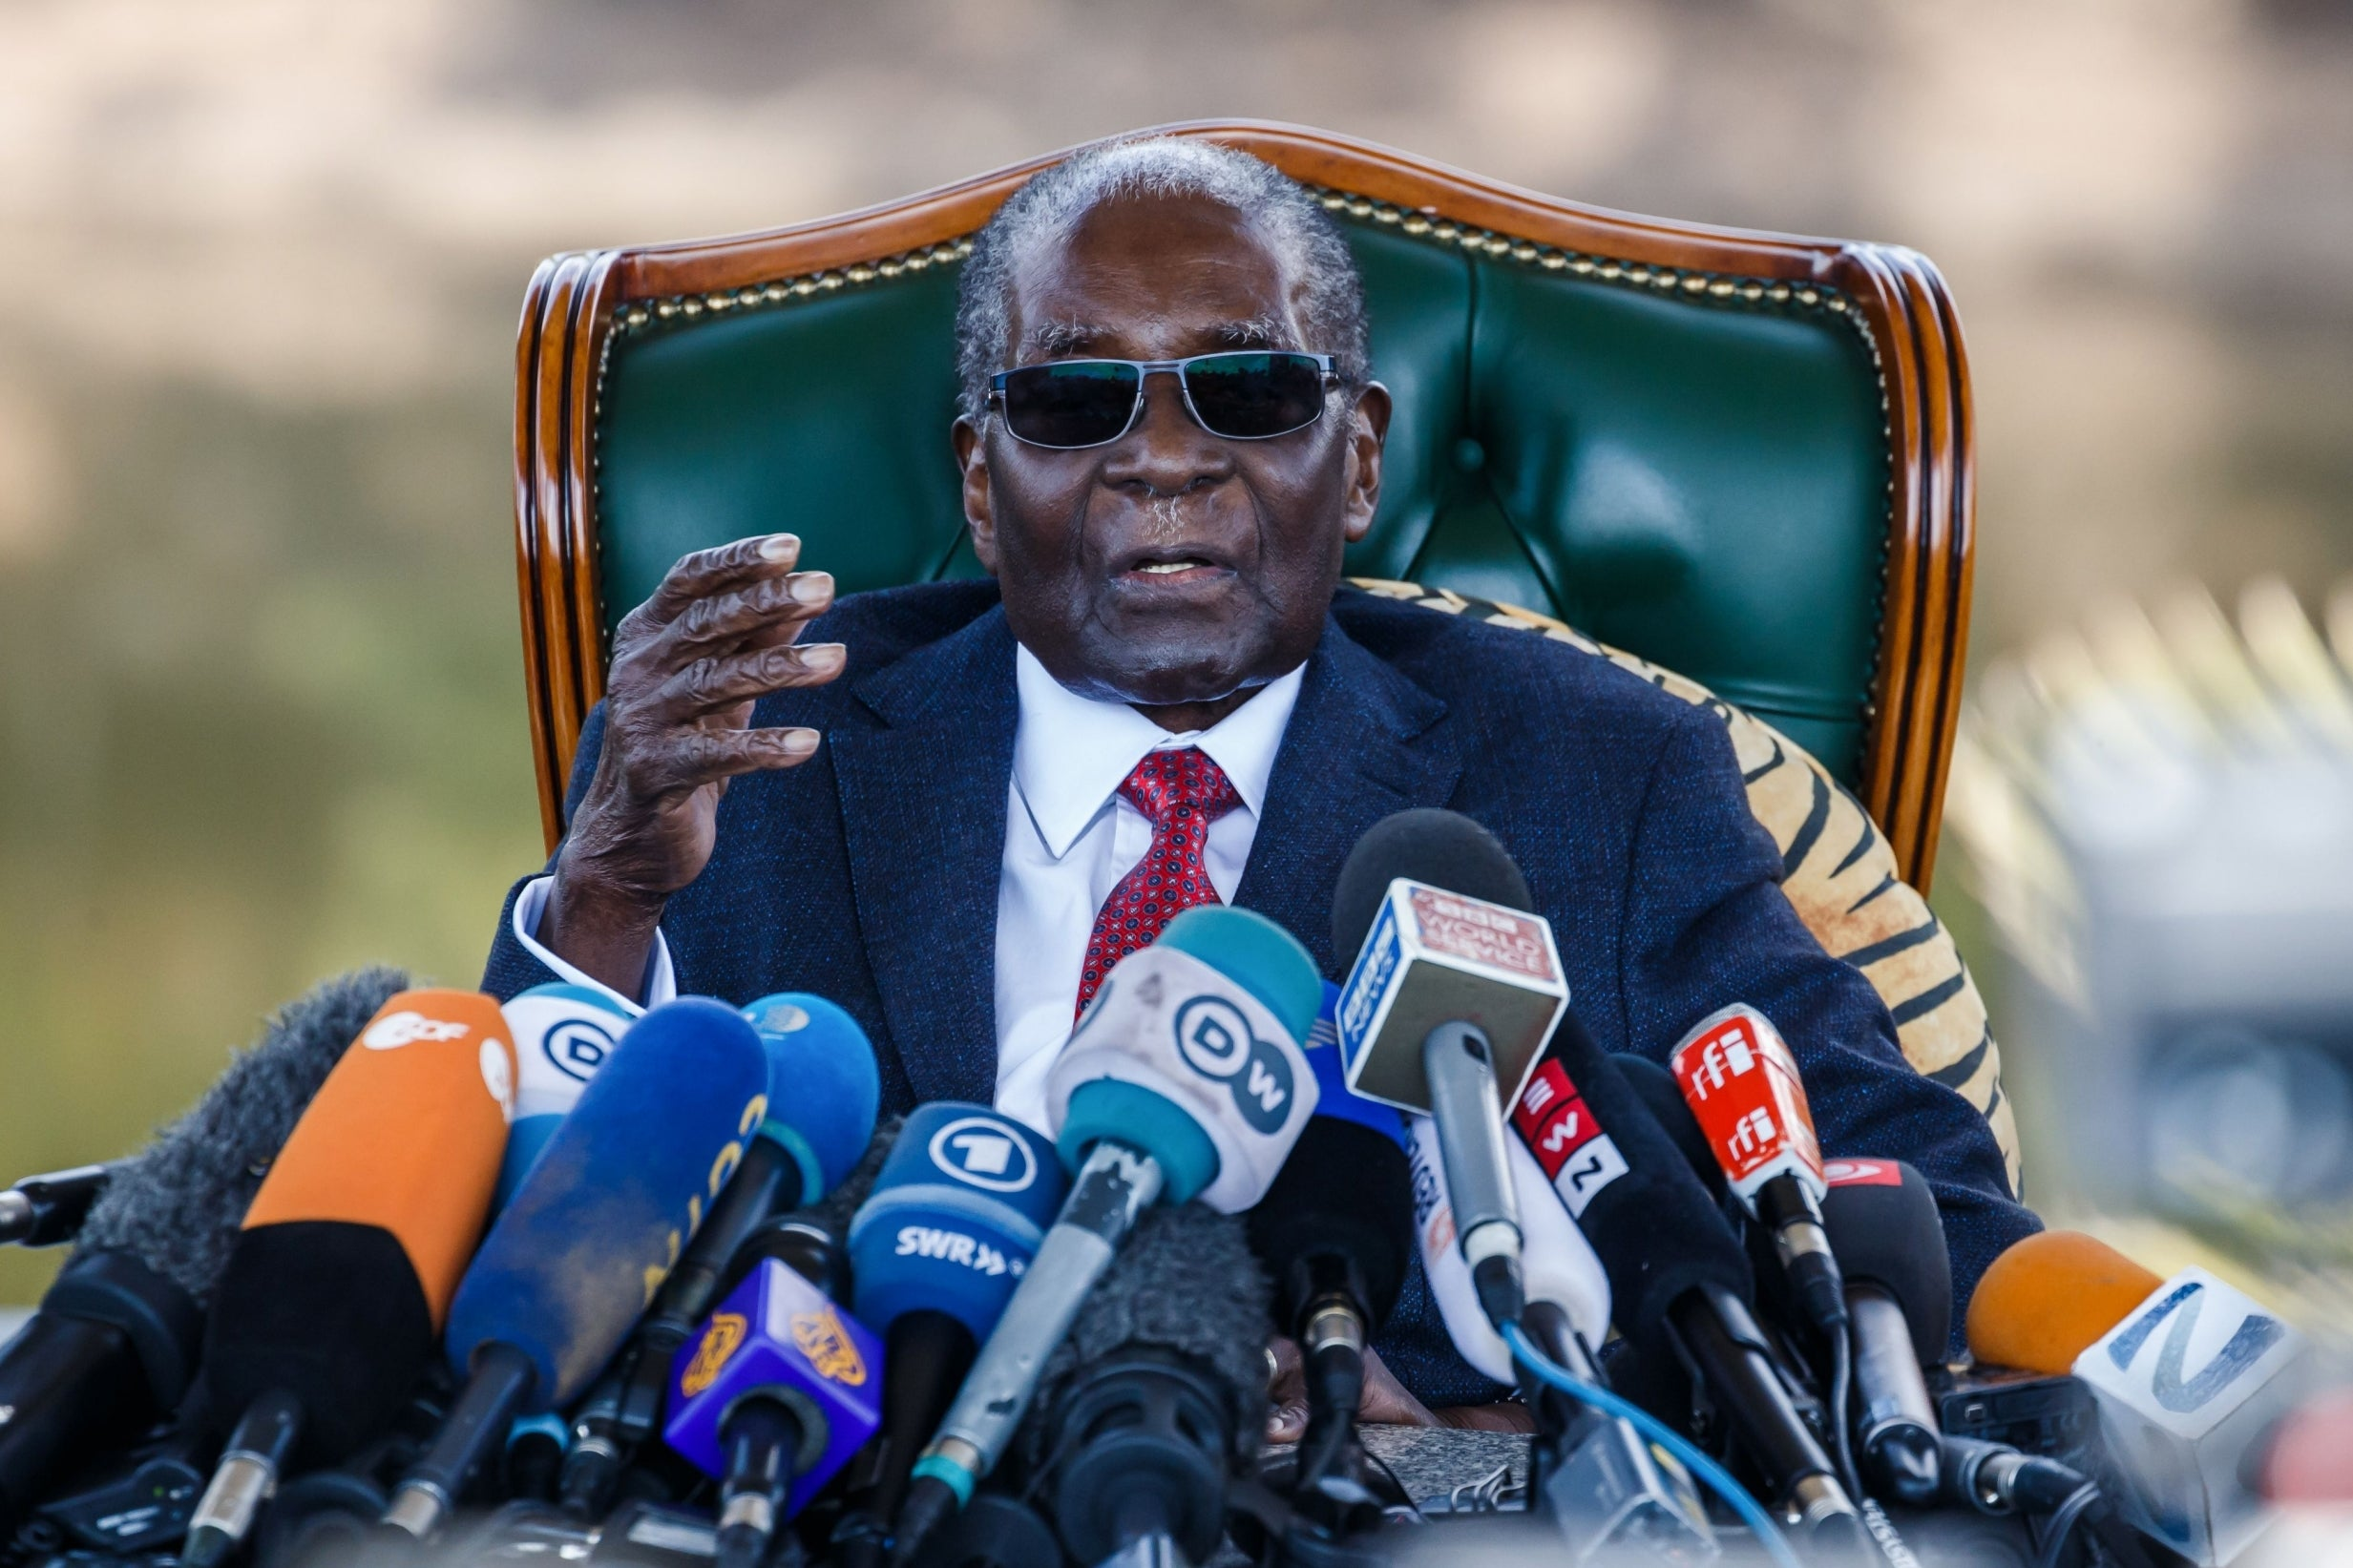 Robert Mugabe brutally squandered the 'jewel' of Zimbabwe – his rule was a bitter lesson for South Africa